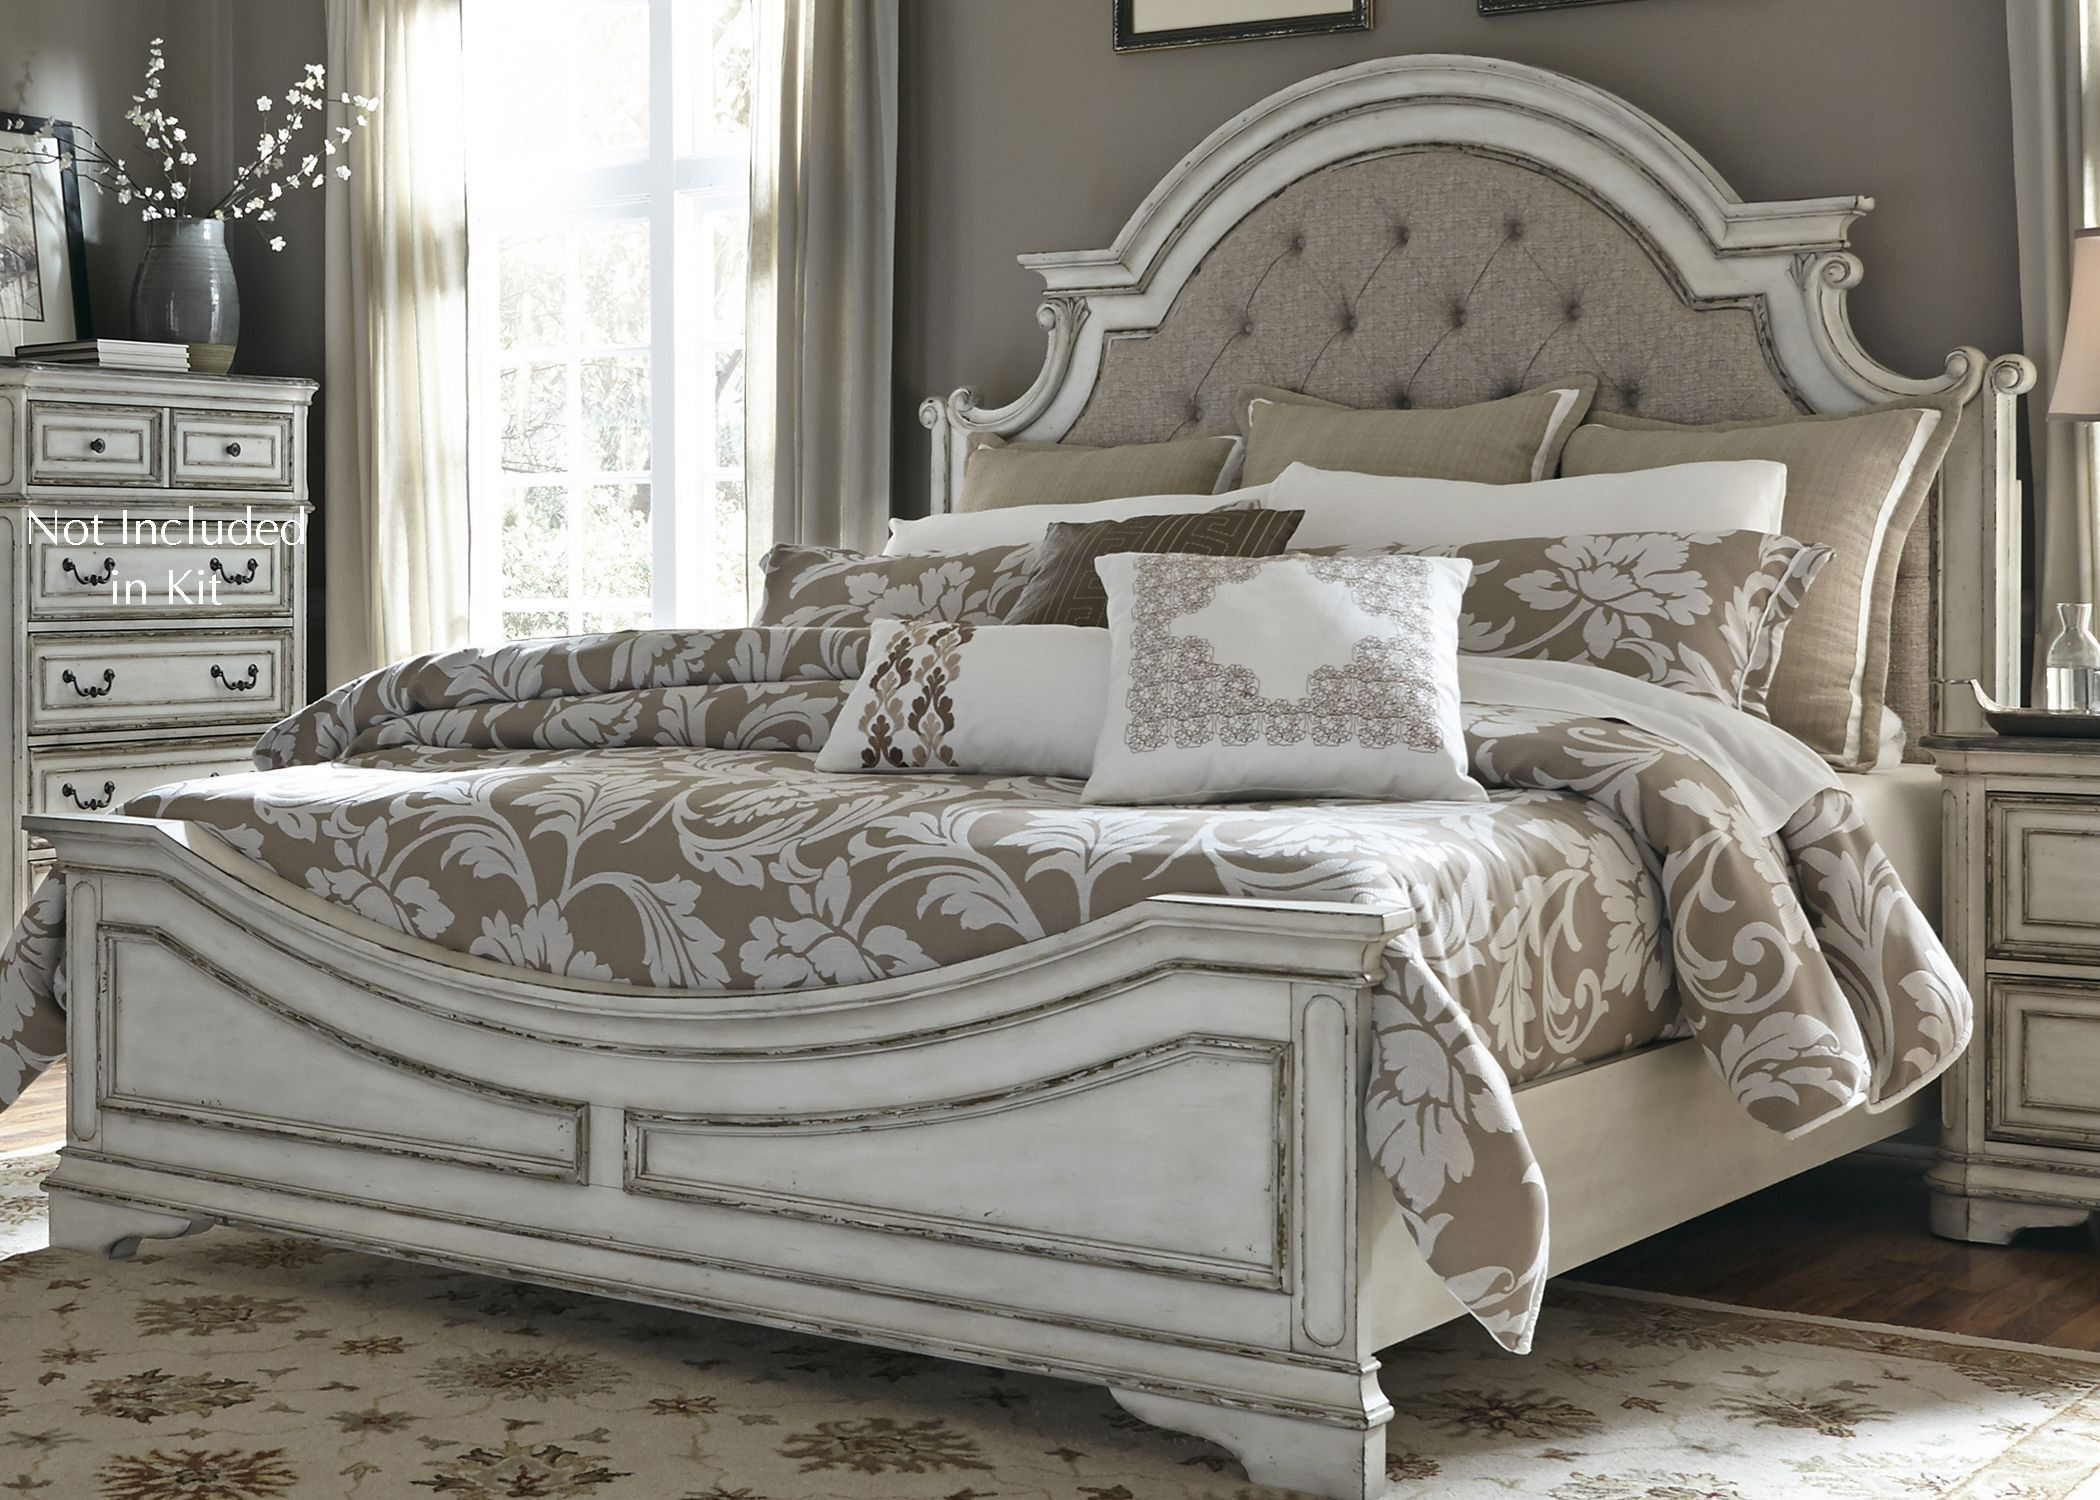 Magnolia Manor Antique White King Upholstered Panel Bed By Liberty With An Affordable Price And Free Home Delivery Coleman Furniture Will Leave You